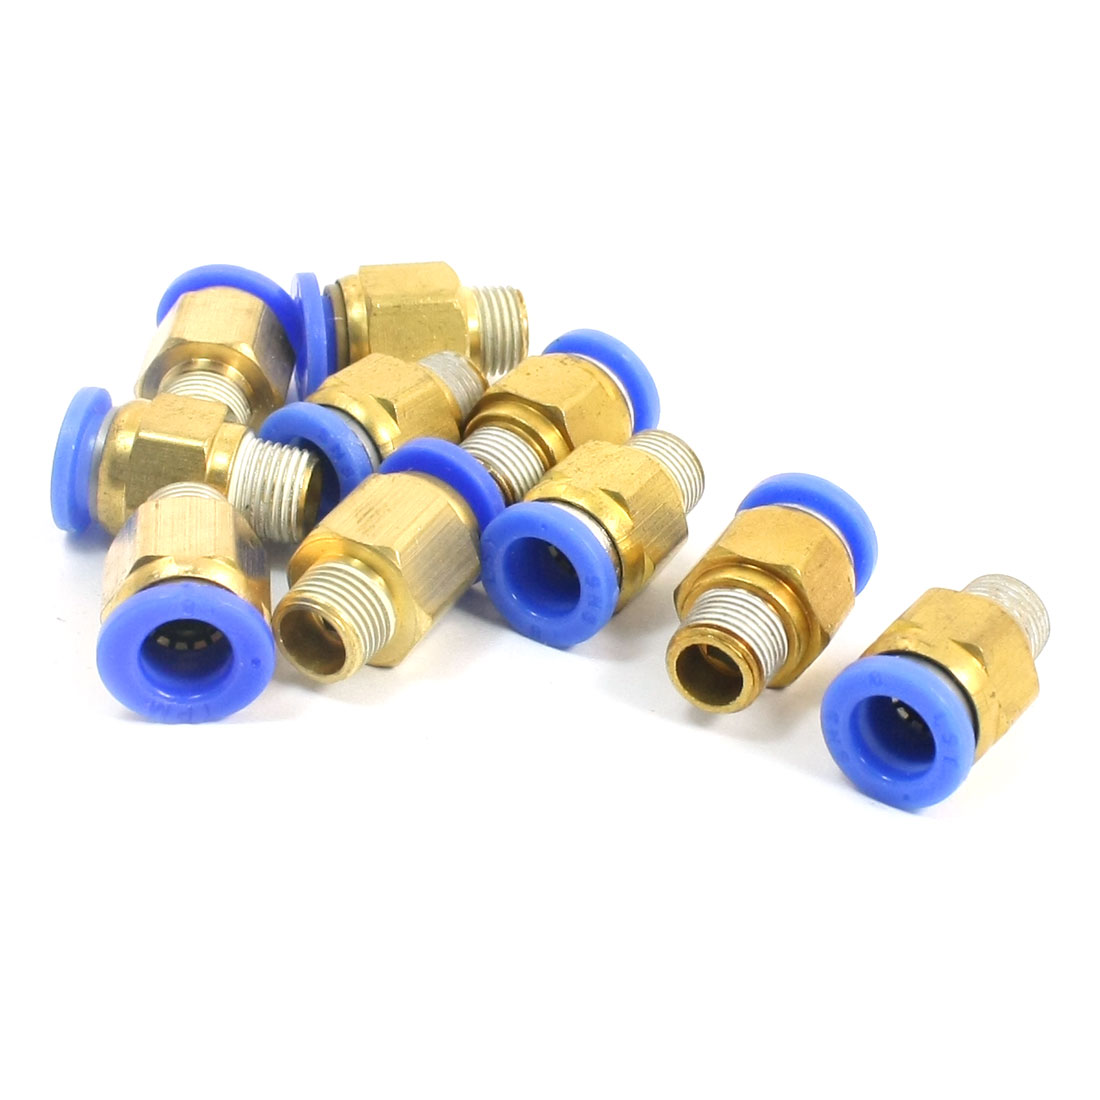 10 PCS 1/8PT Male Thread 8mm Push in Tube Dia Pneumatic Air Quick Release Fitting Coupler Joint Connector Adapter